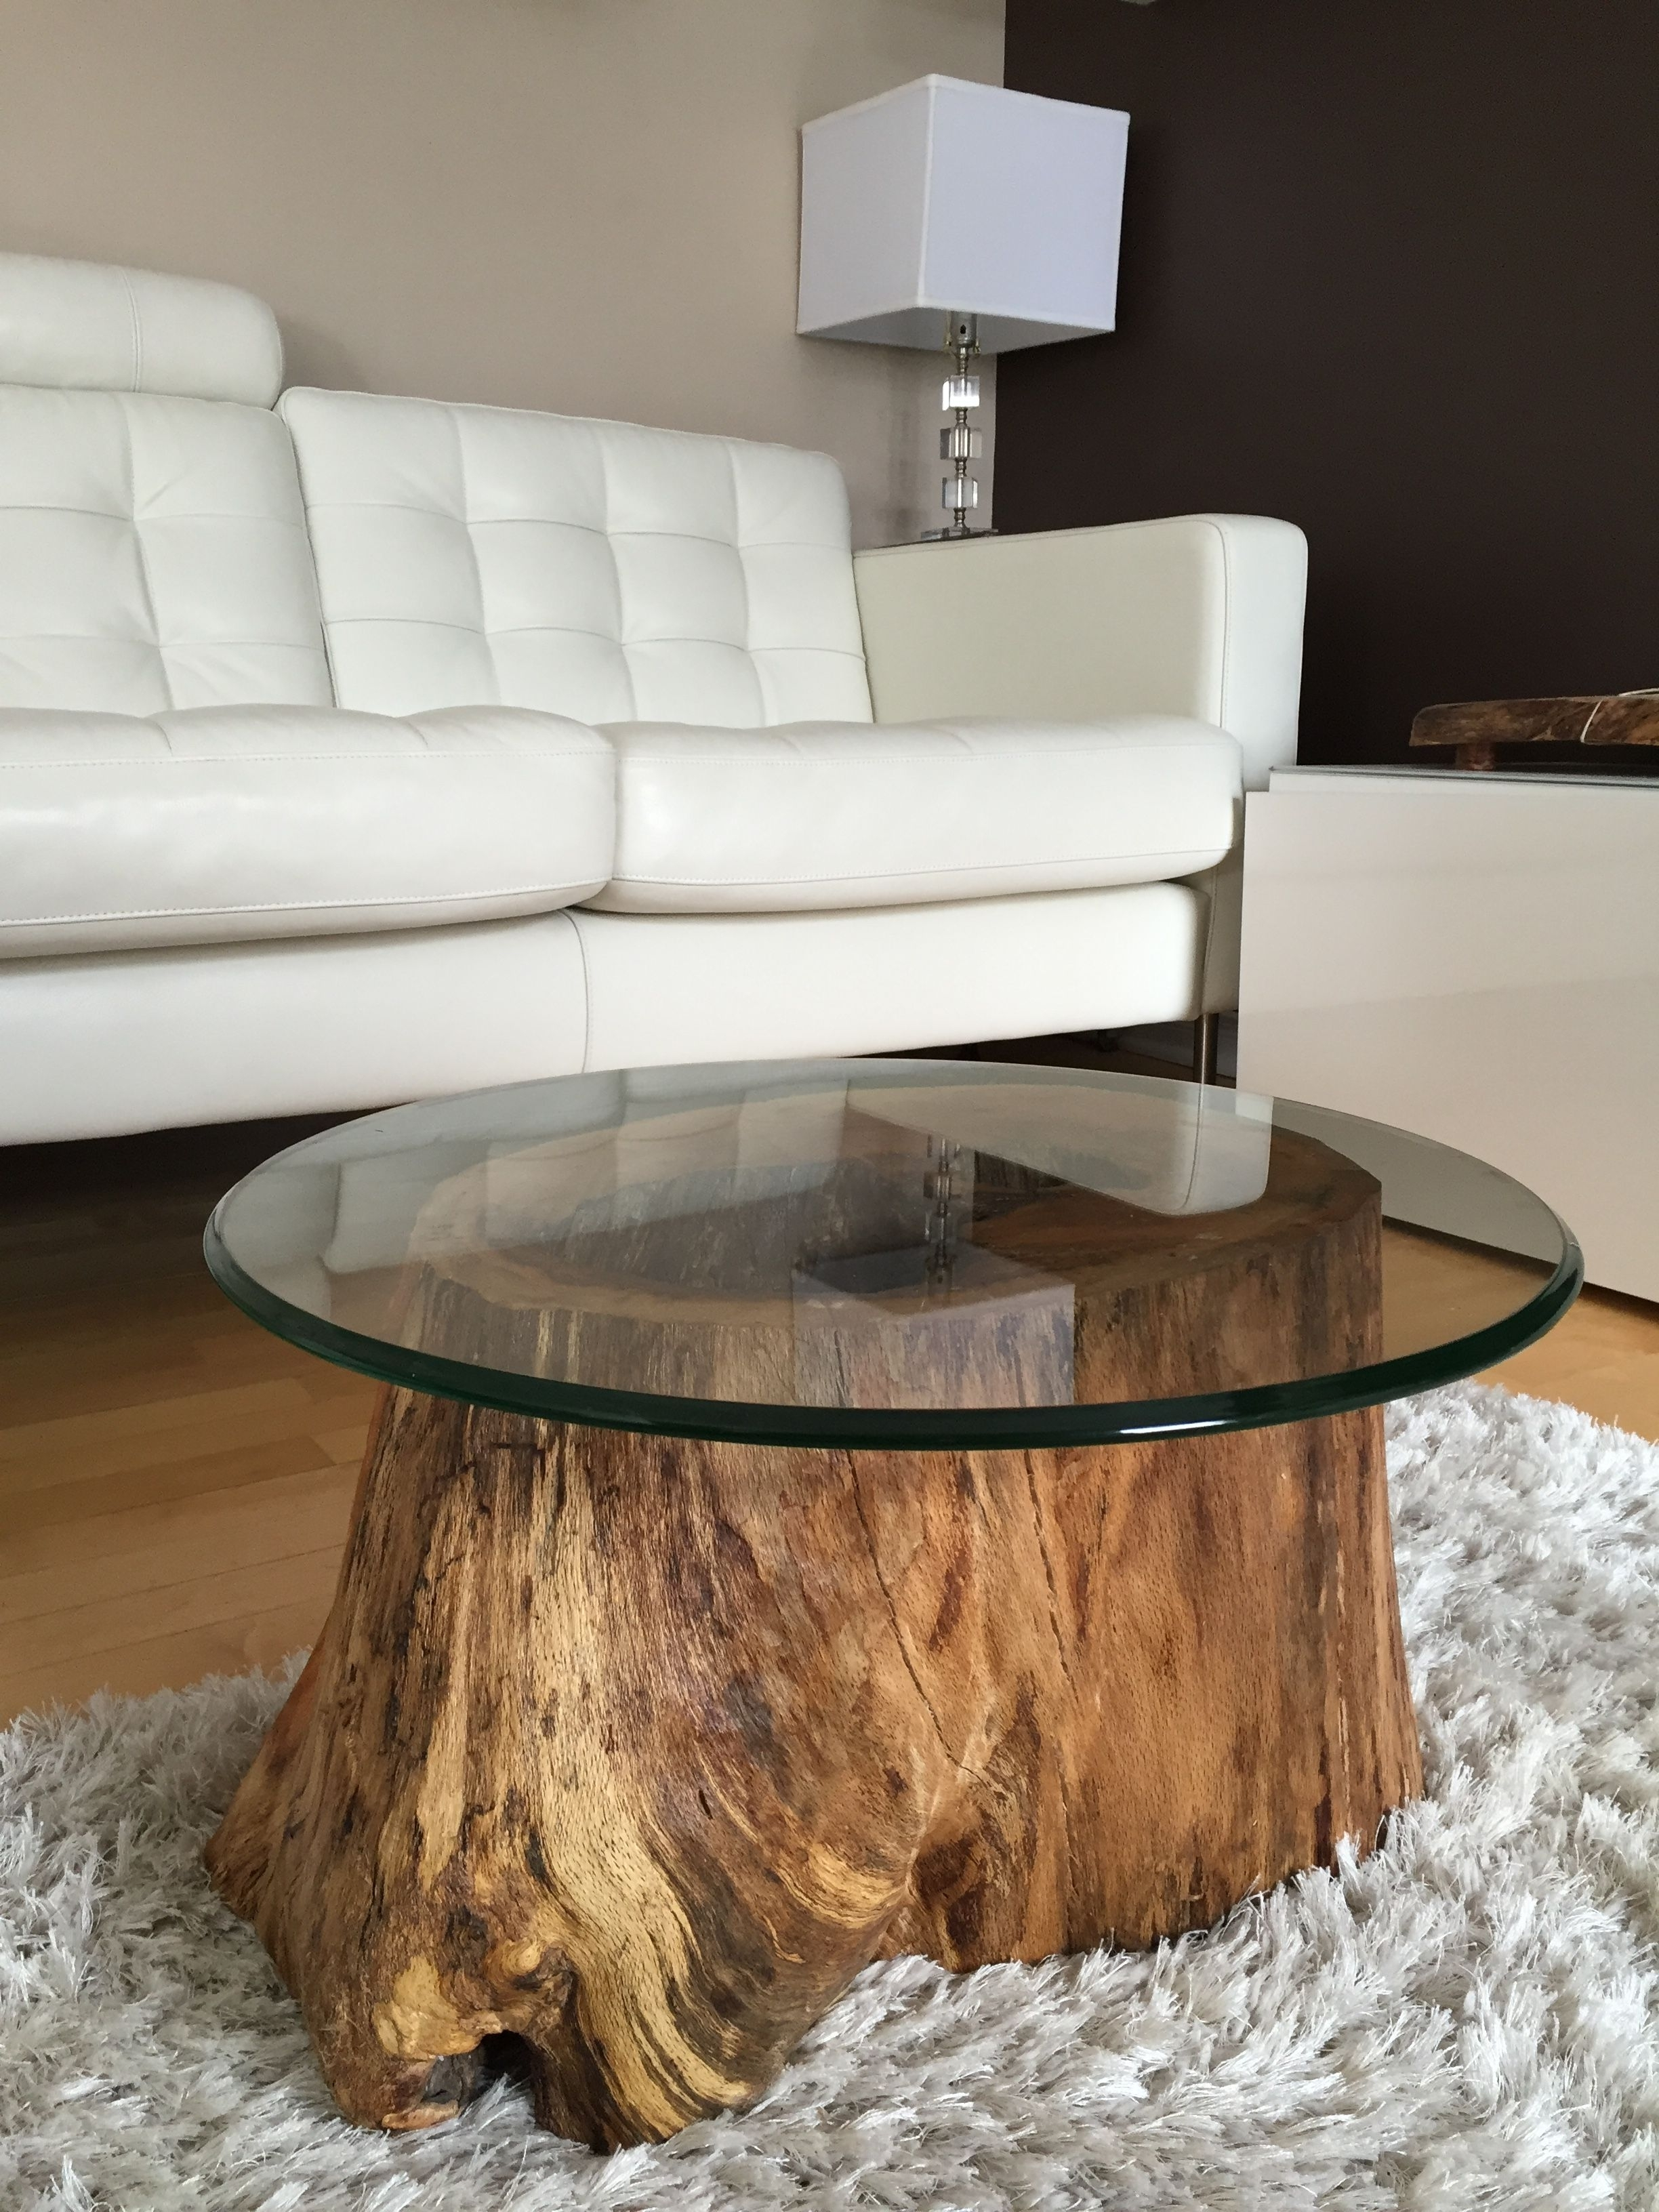 Furniture, Rustic Pertaining To Most Recently Released Recycled Pine Stone Side Tables (View 11 of 20)